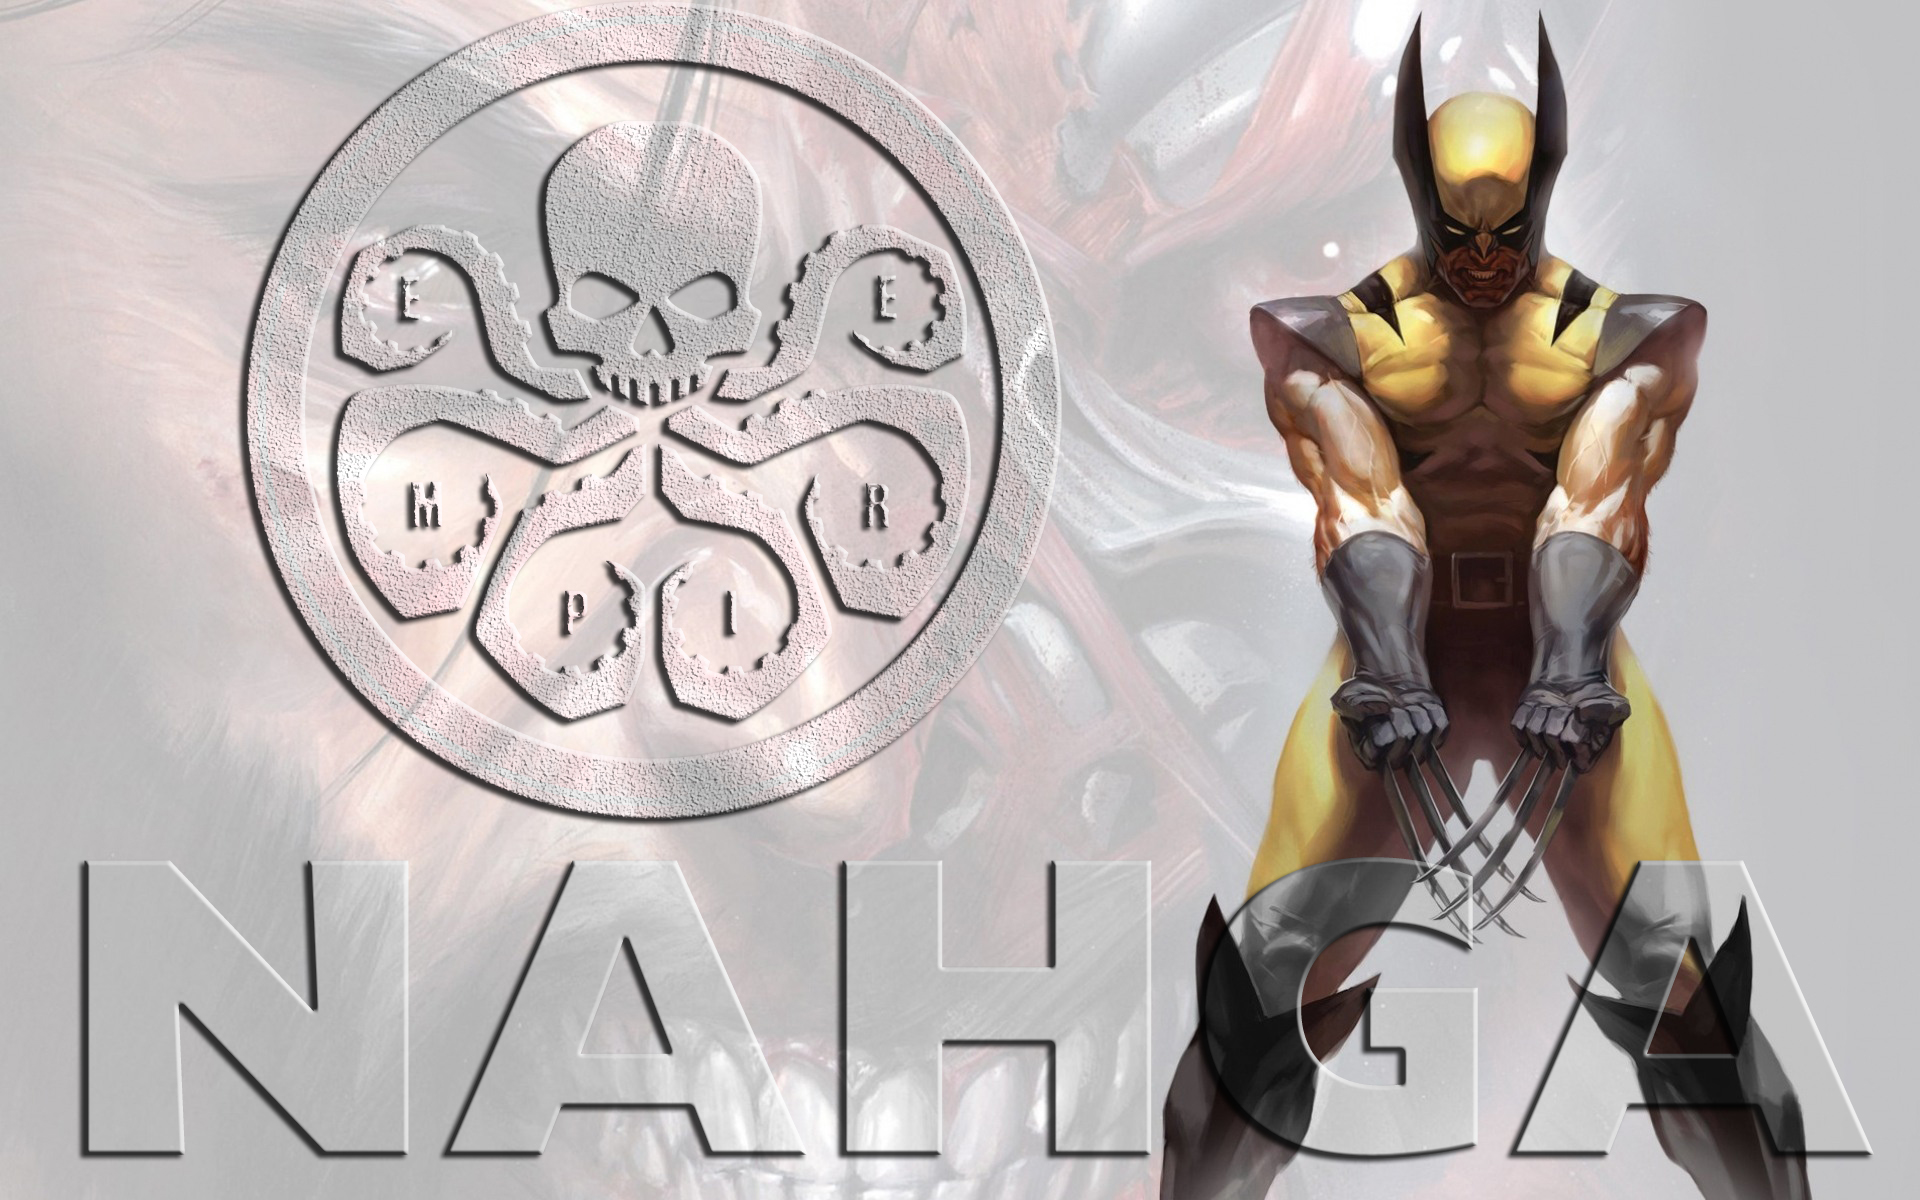 Read online Artifacts comic -  Issue #22 - 36